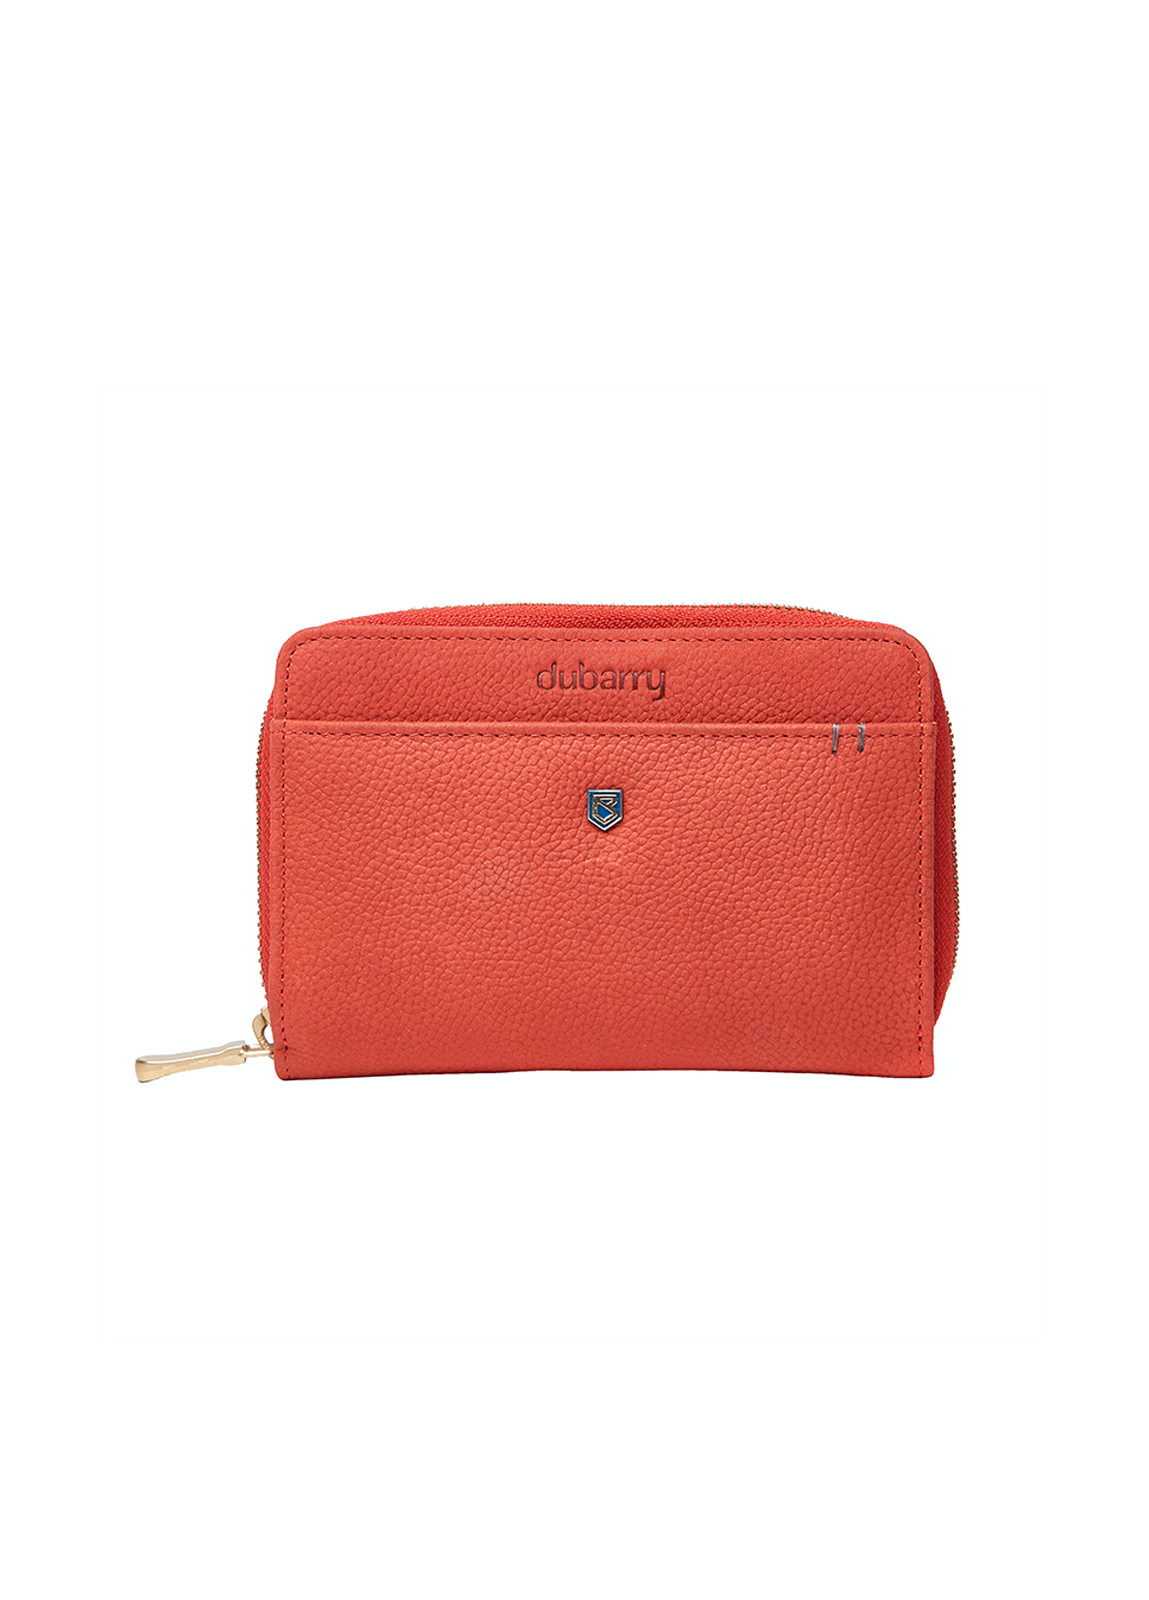 Dubarry_Portrush Leather  Wallet - Coral_Image_1